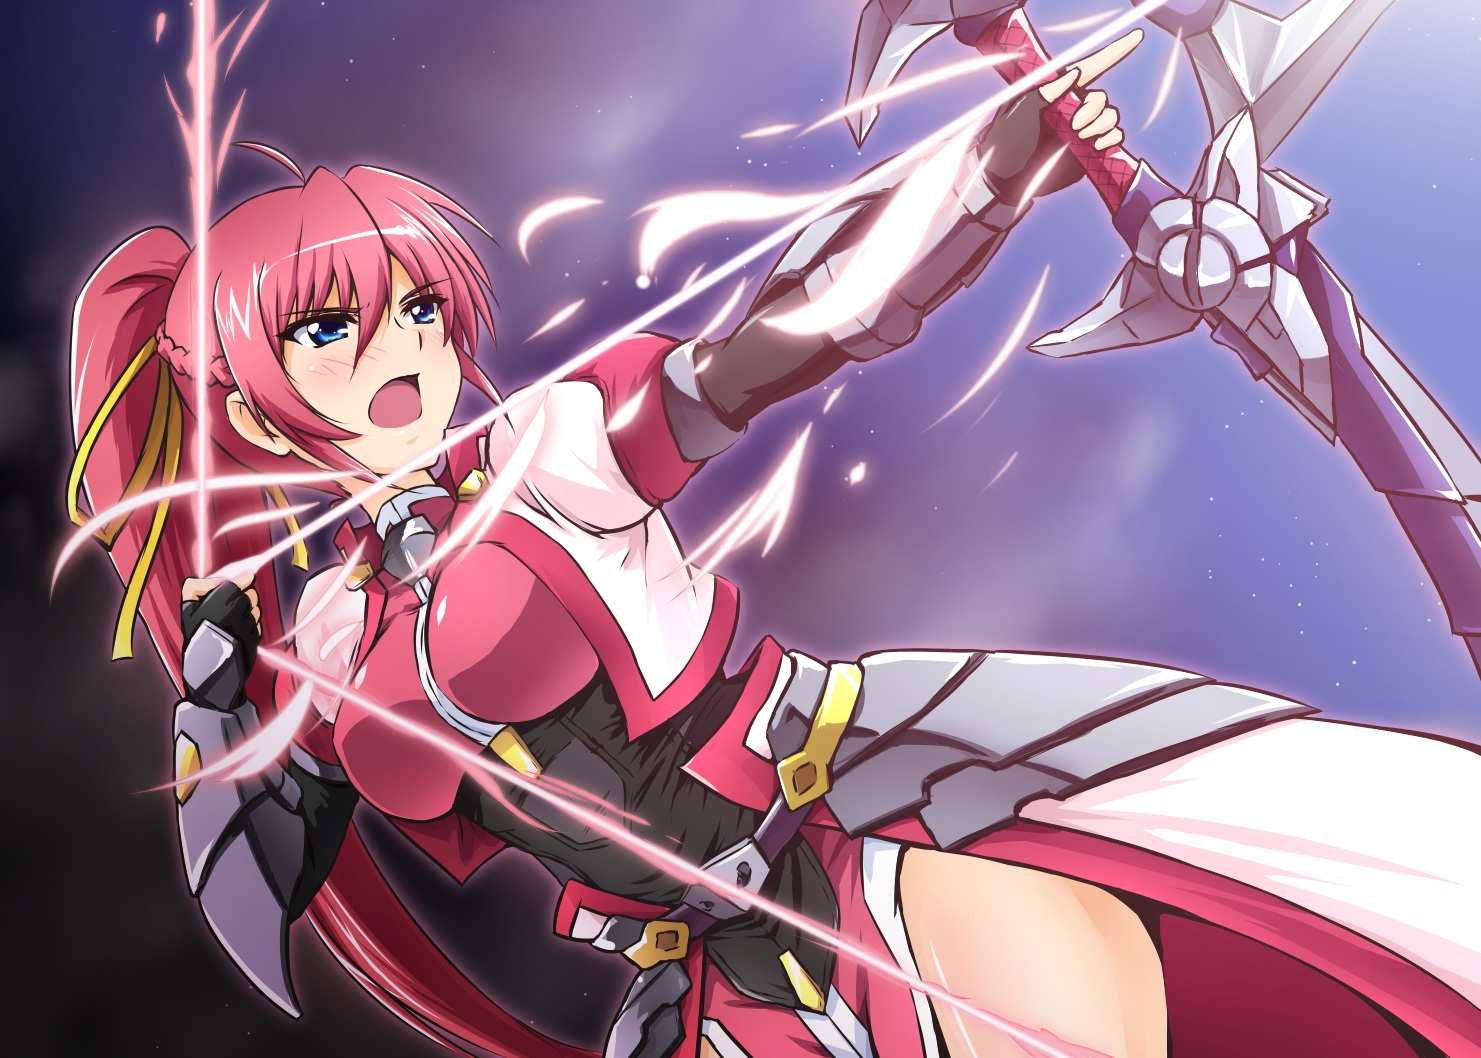 blue_eyes blush bow_(weapon) braids breasts diesel-turbo elbow_gloves gloves long_hair mahou_shoujo_lyrical_nanoha mahou_shoujo_lyrical_nanoha_a's pink_hair ponytail signum weapon